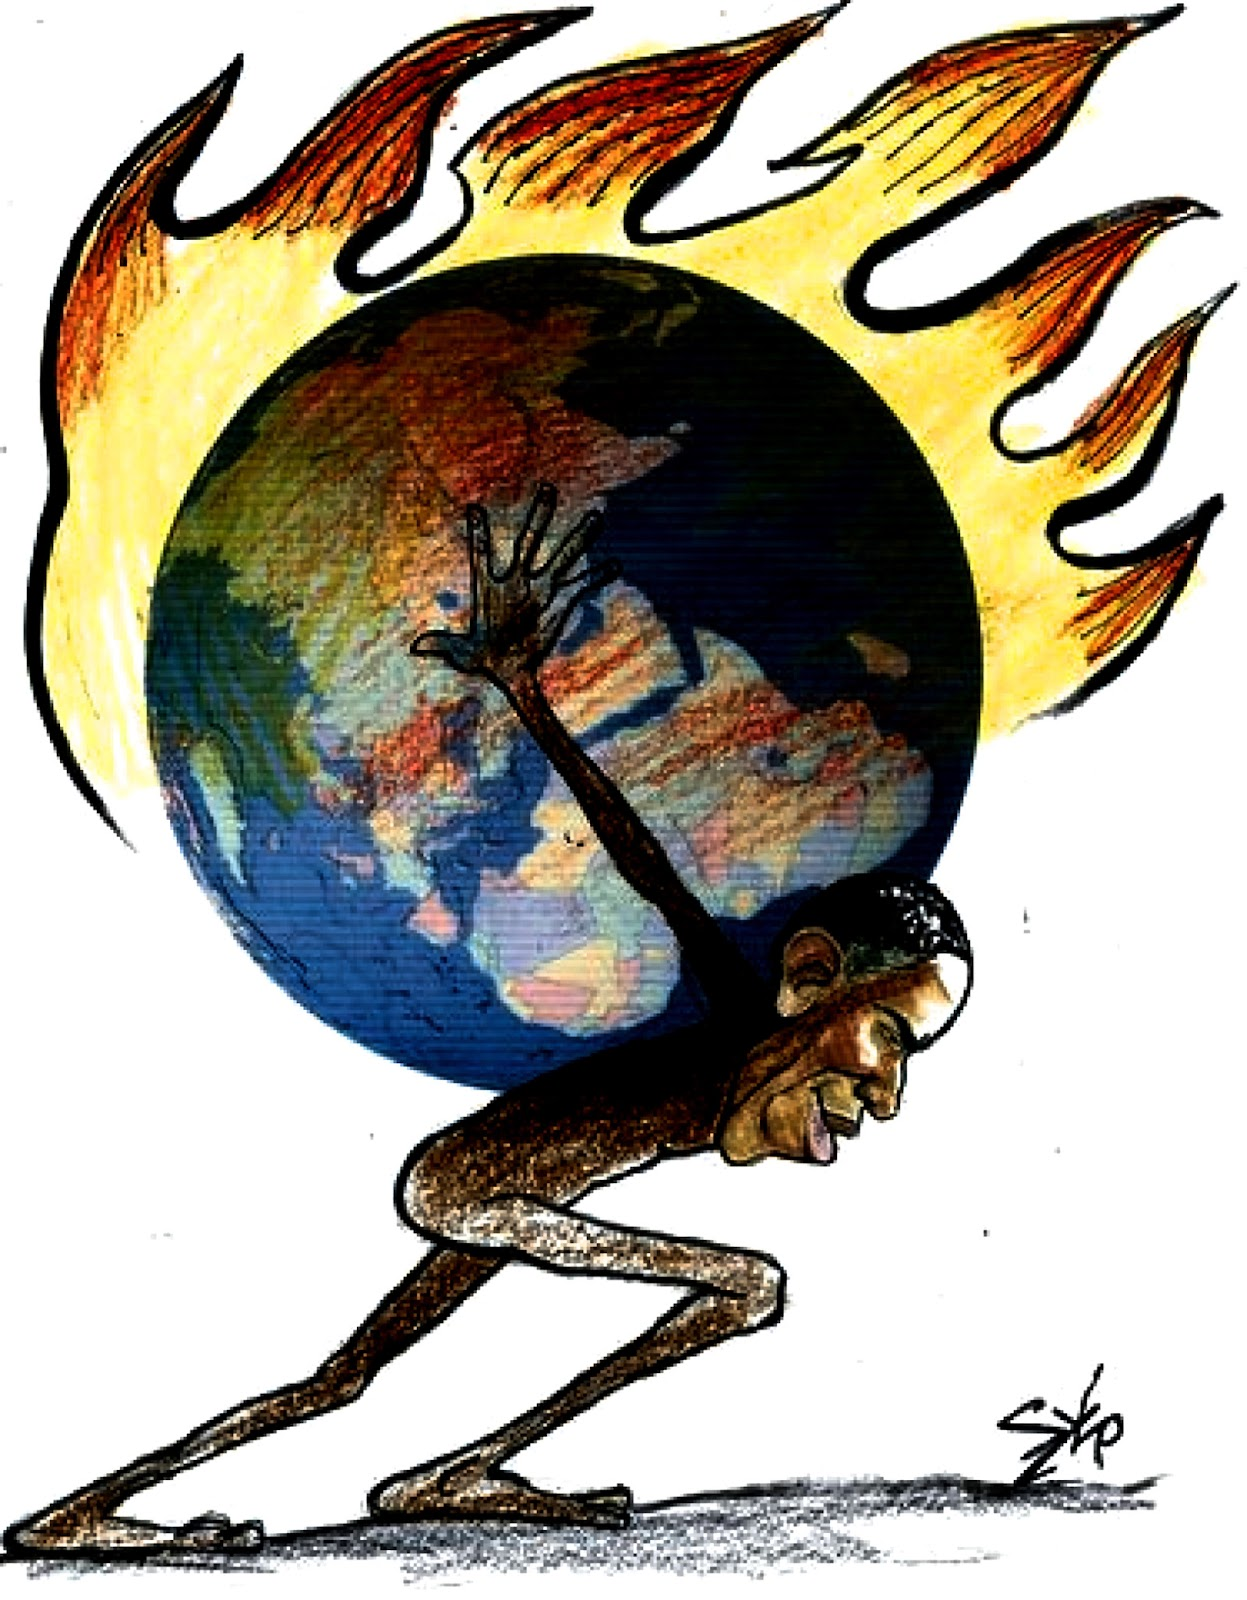 Szep: Obama carrying the planet.